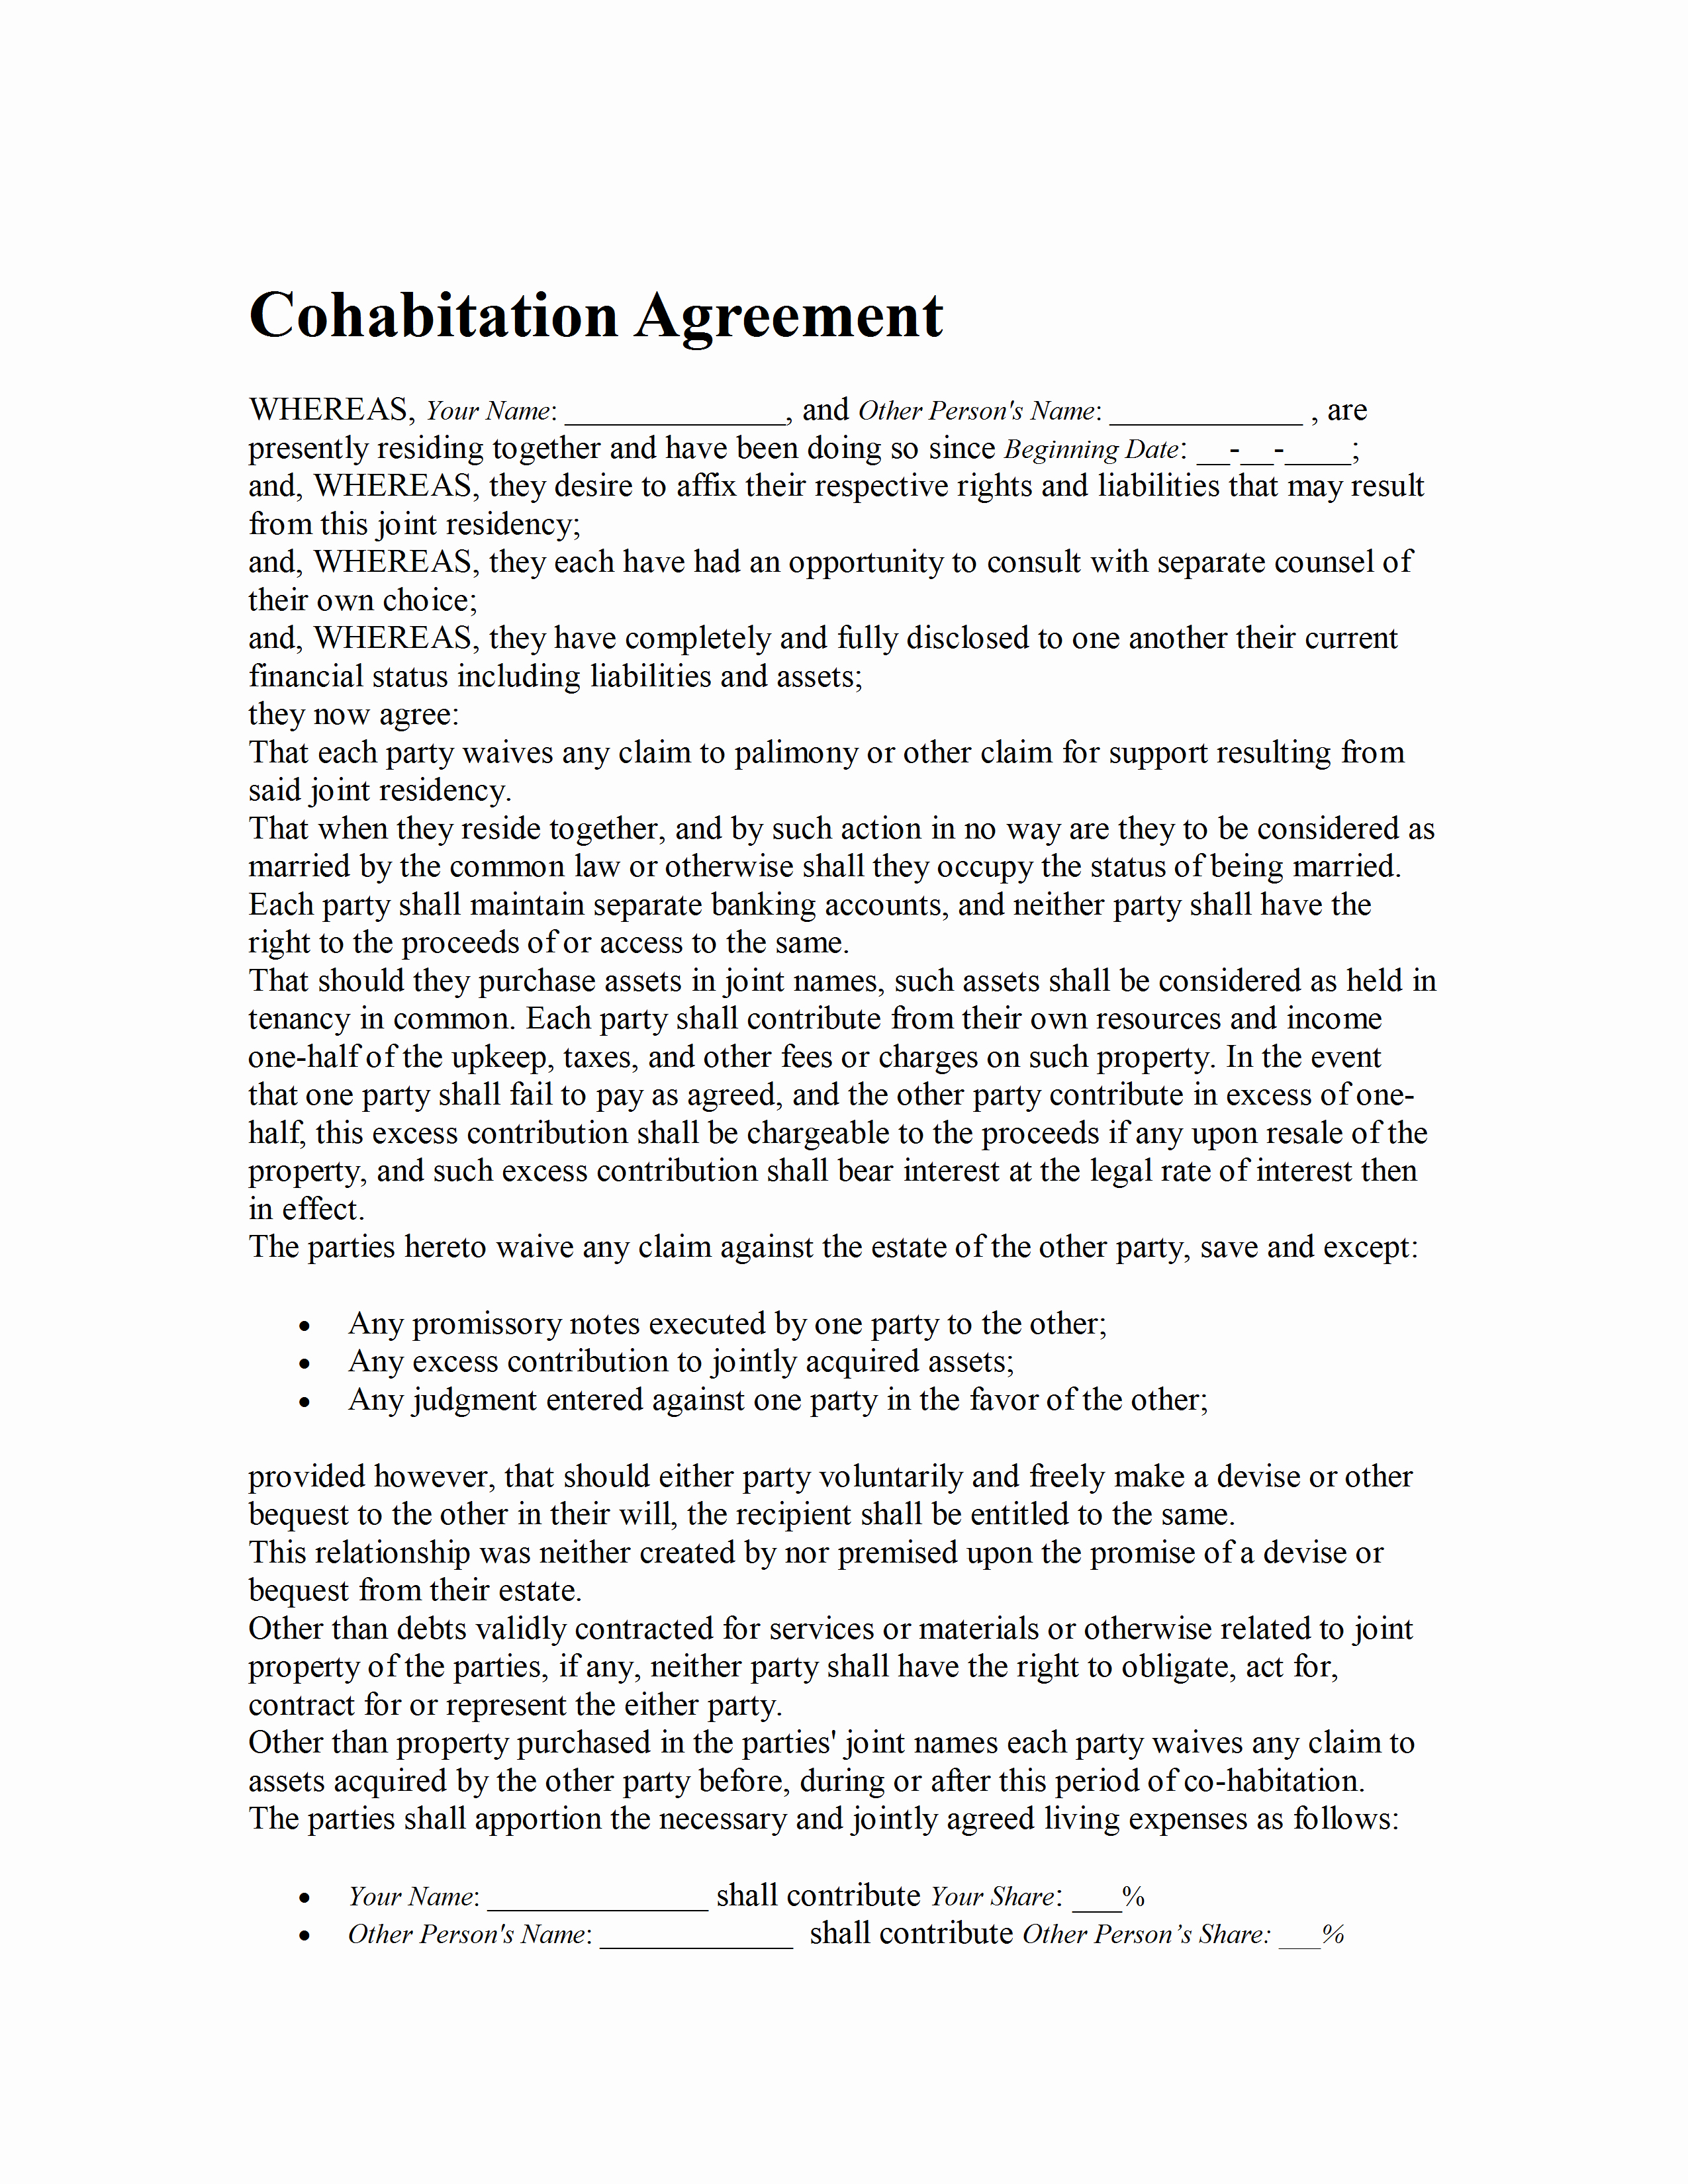 Living Agreement Template Lovely Sample Cohabitation Agreement 100 Nanny Contract Template